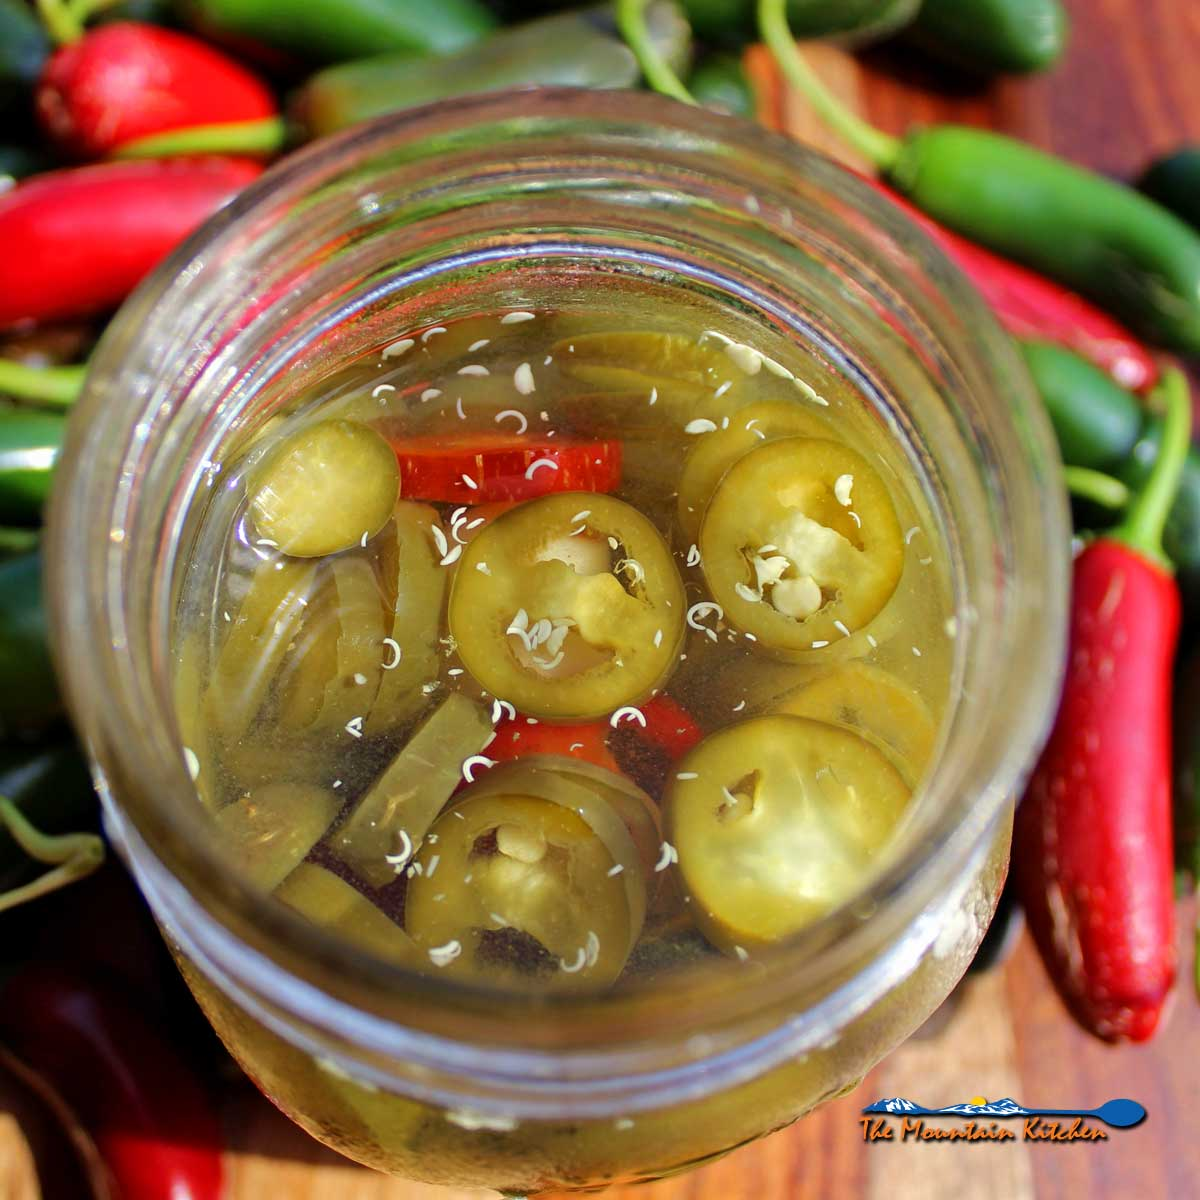 Pickled Jalapenos {Pickle Your Jalapeno Harvest